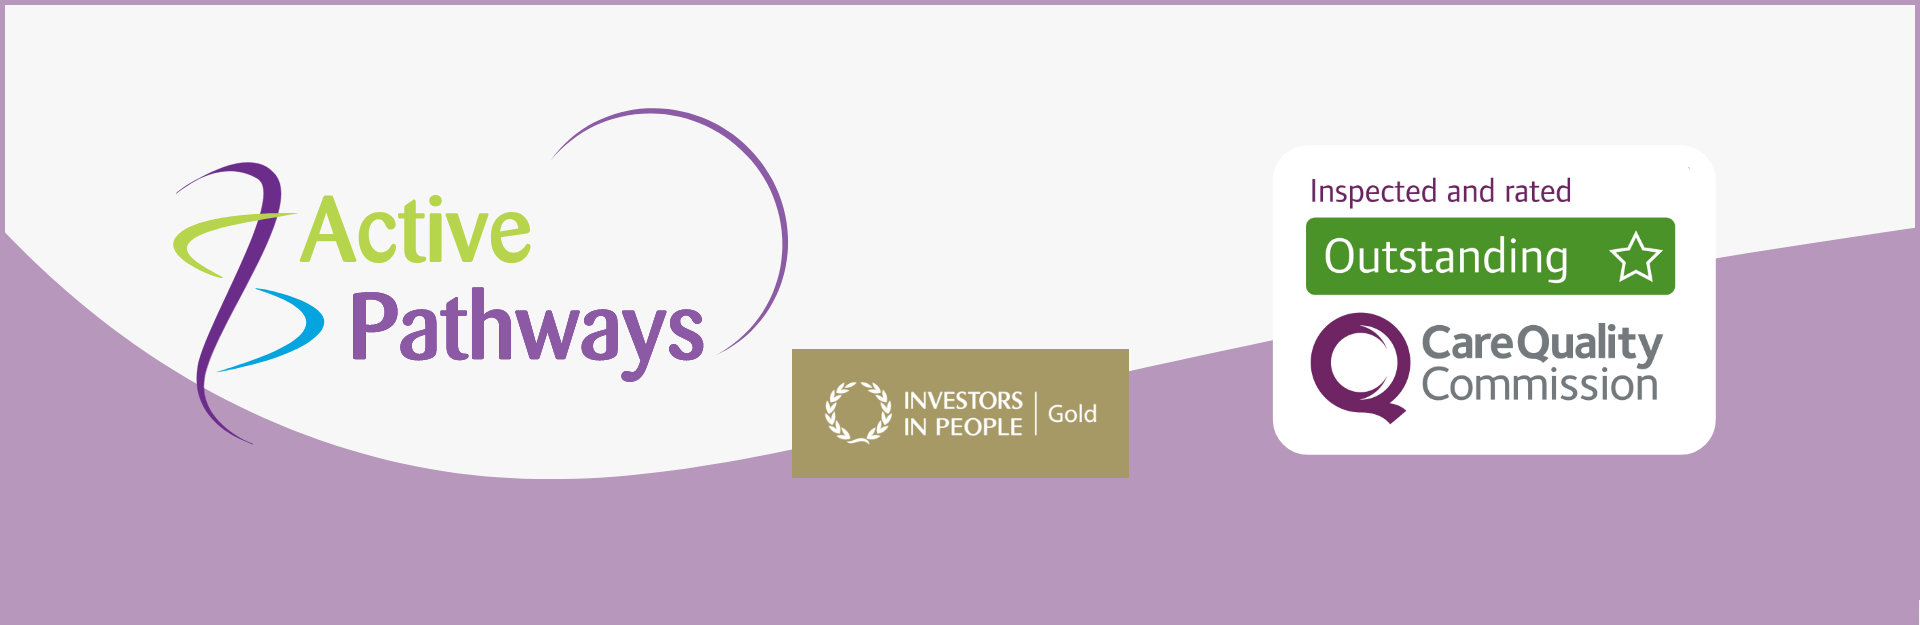 Investors in People Gold, Inspected and rated Outstaning by the Care Quality Commission